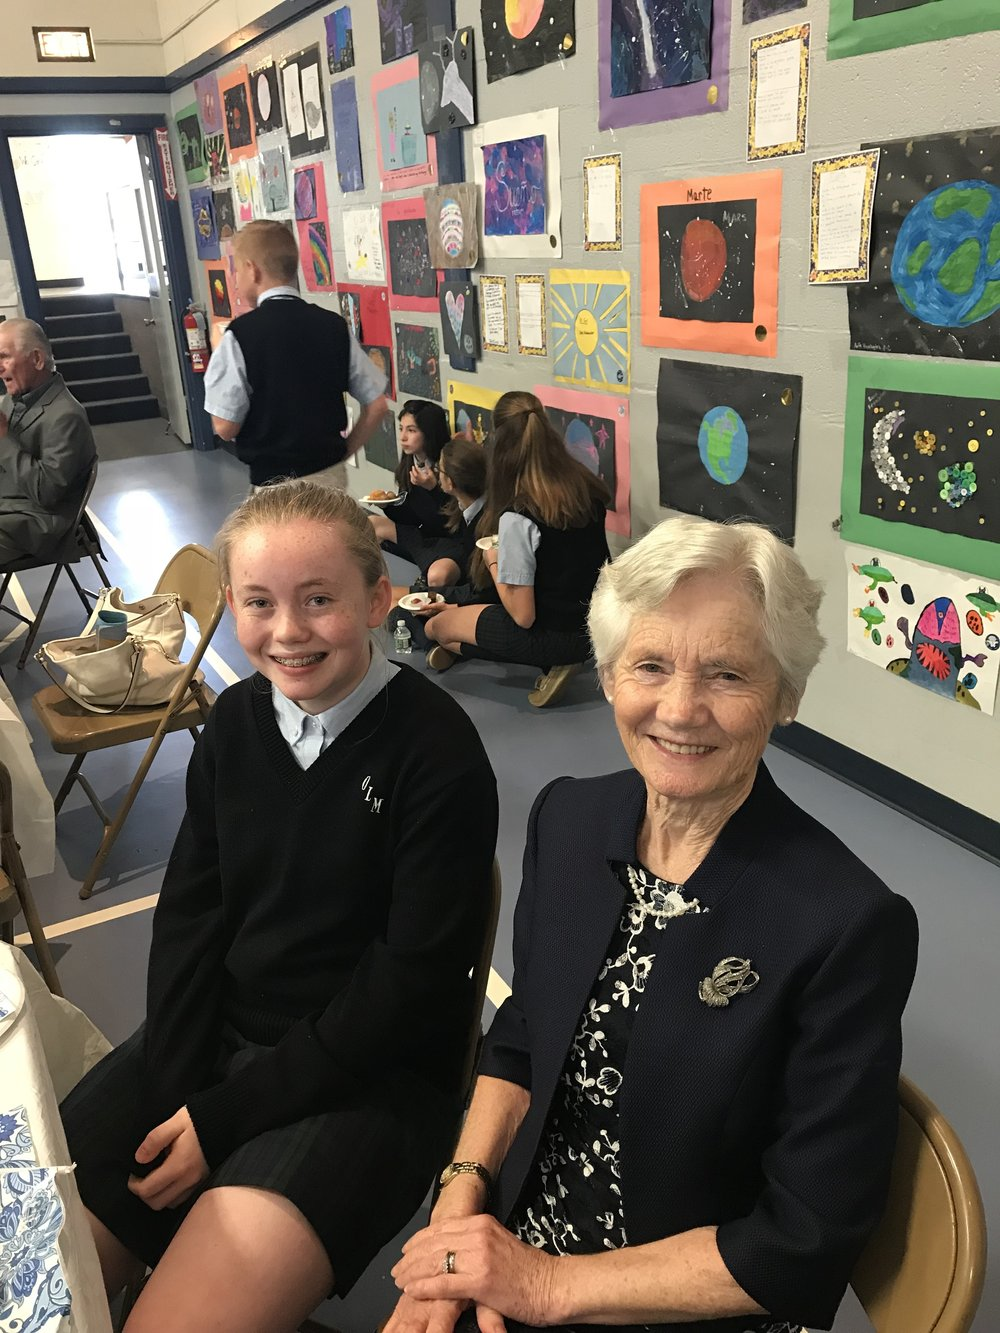 OLM 7th Grader Ali Campion poses with her Grandmother, Delia Campion, who traveled from Carlow, Ireland for the OLM School Grandparents Day!